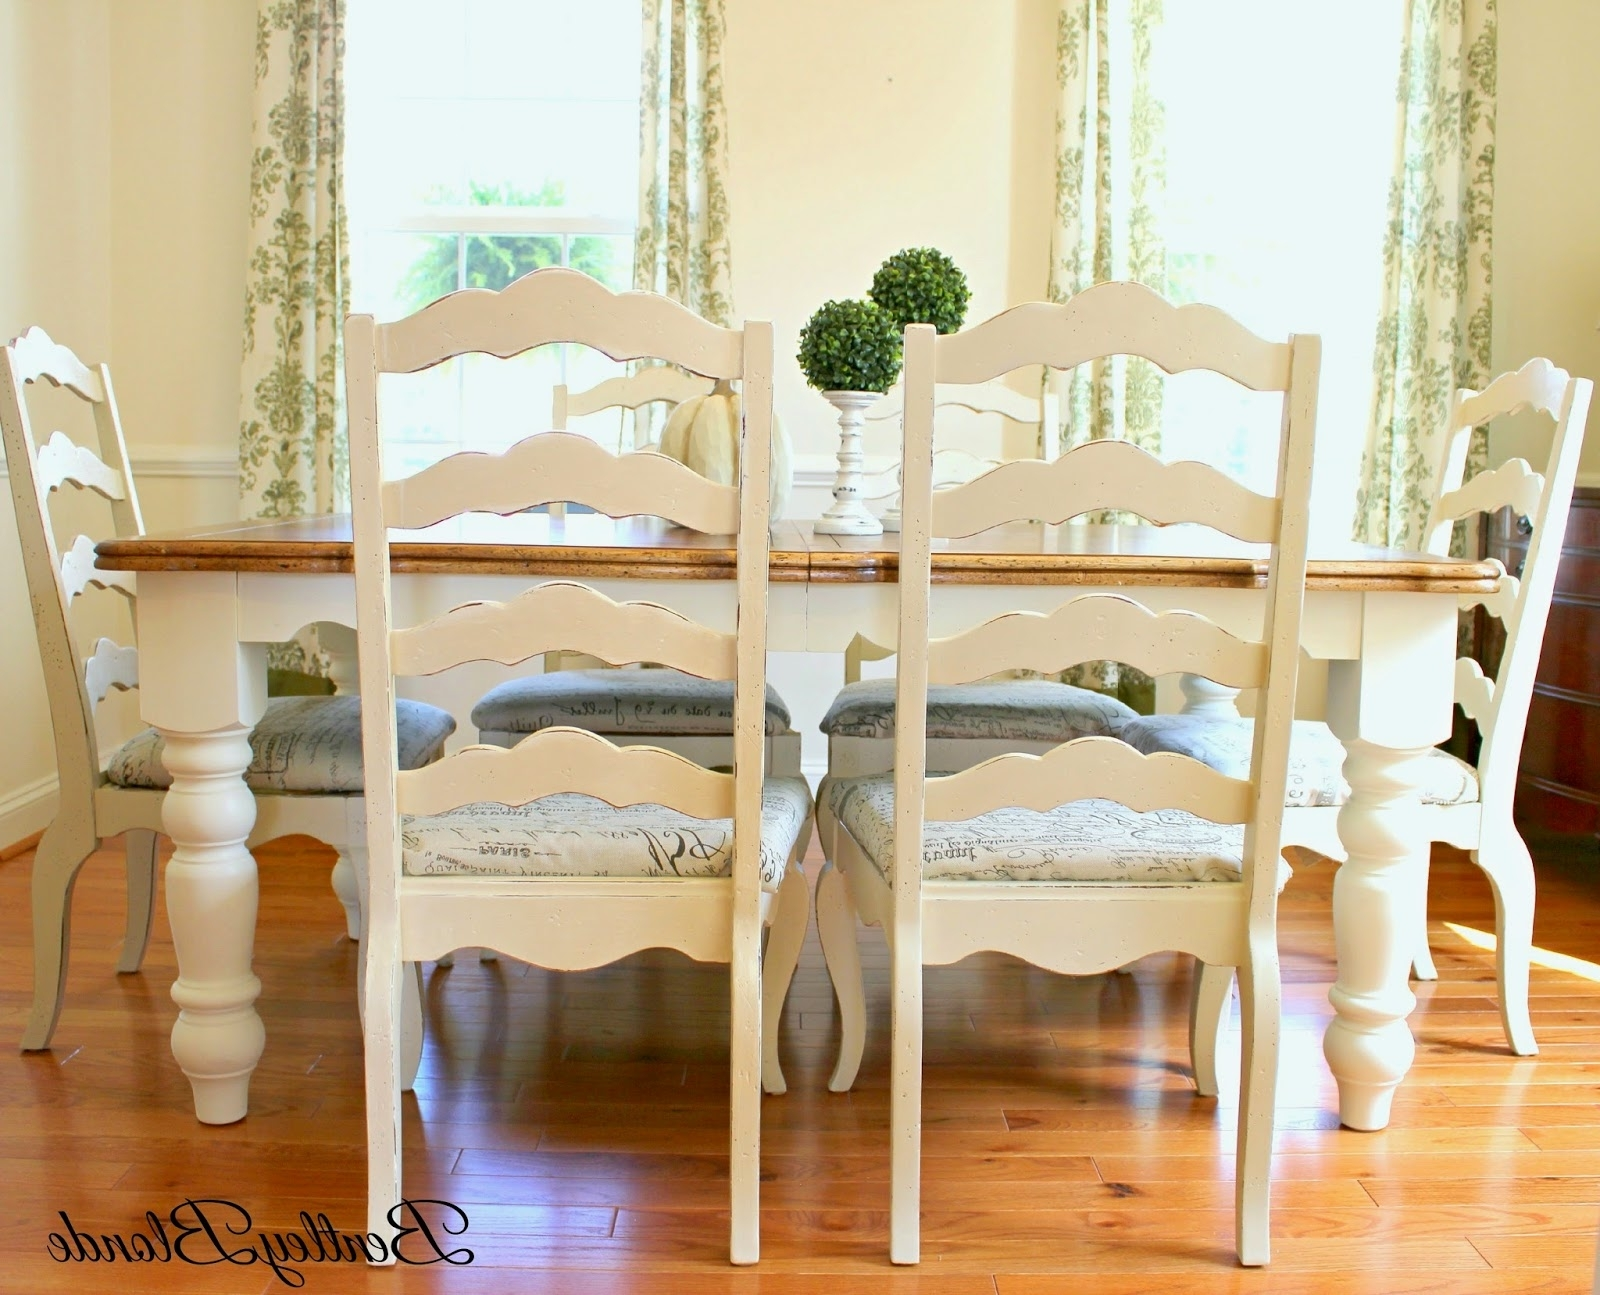 Widely Used Bentleyblonde: Diy Farmhouse Table & Dining Set Makeover With Annie With Ivory Painted Dining Tables (View 4 of 25)